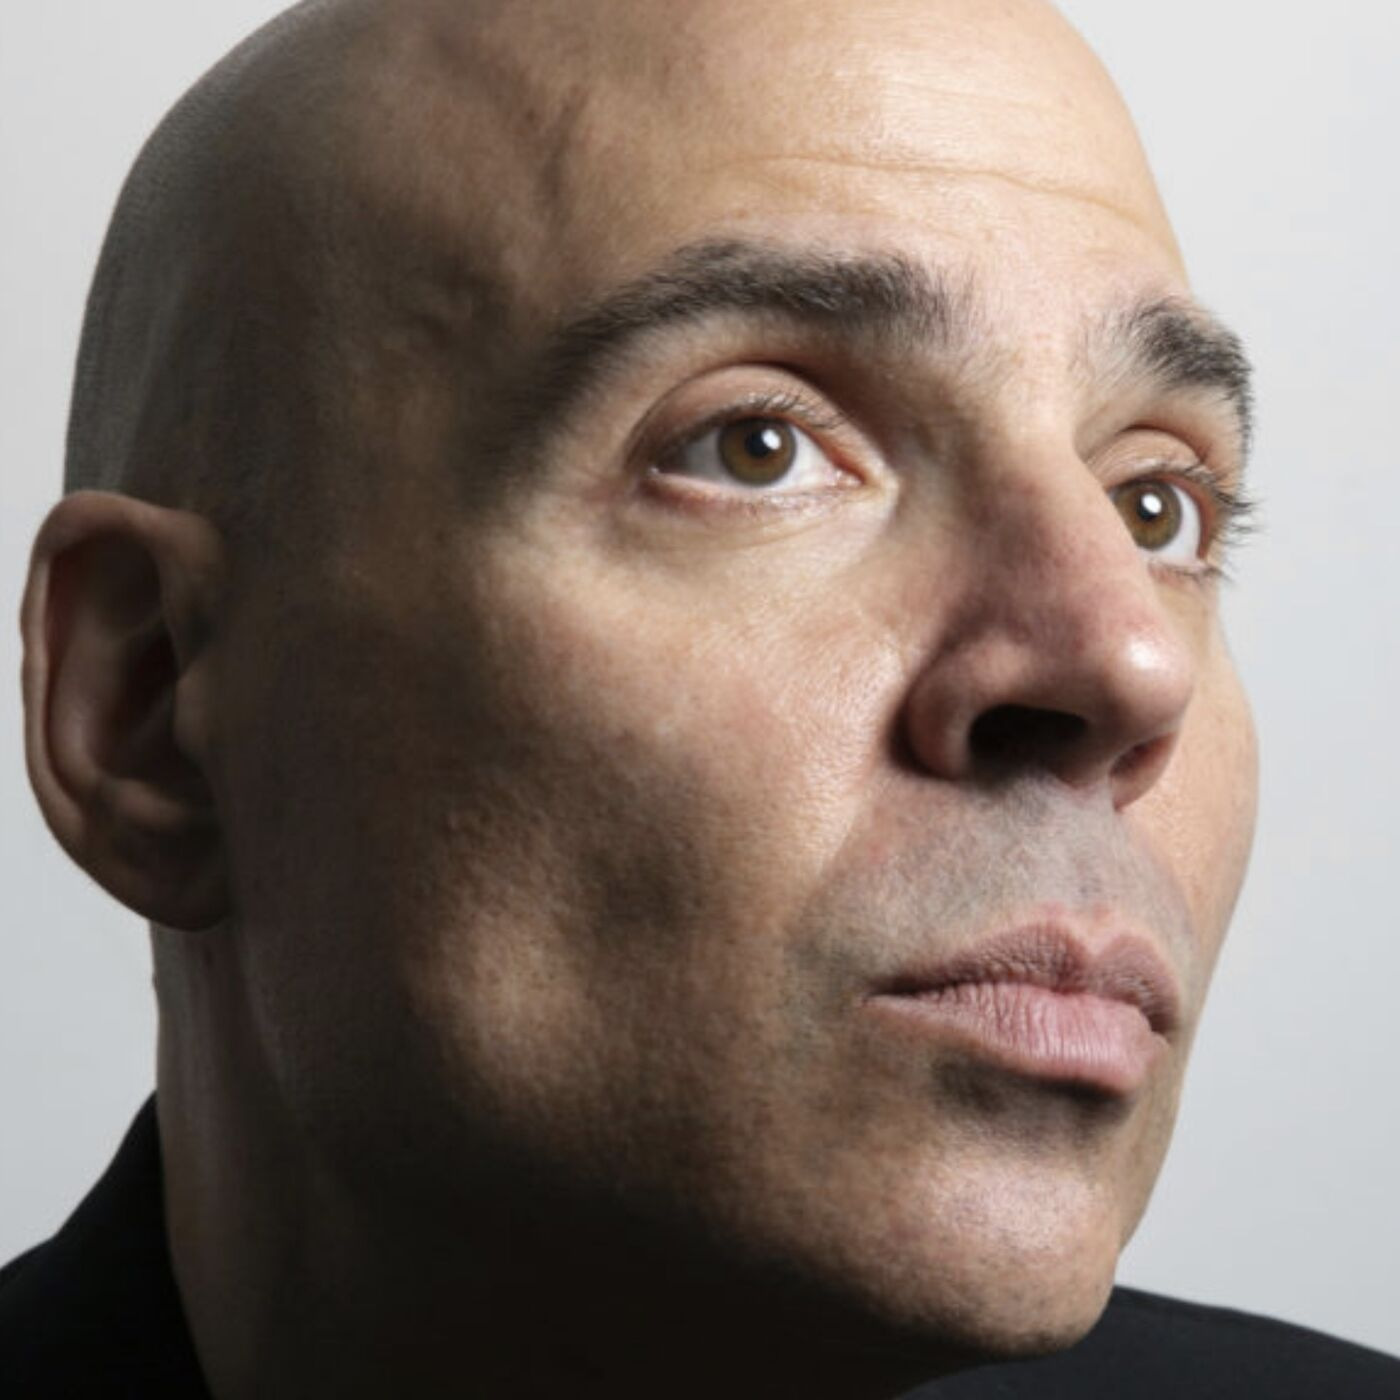 Merck Mercuriadis, CEO, Hipgnosis: Spending $1 billion on Songs